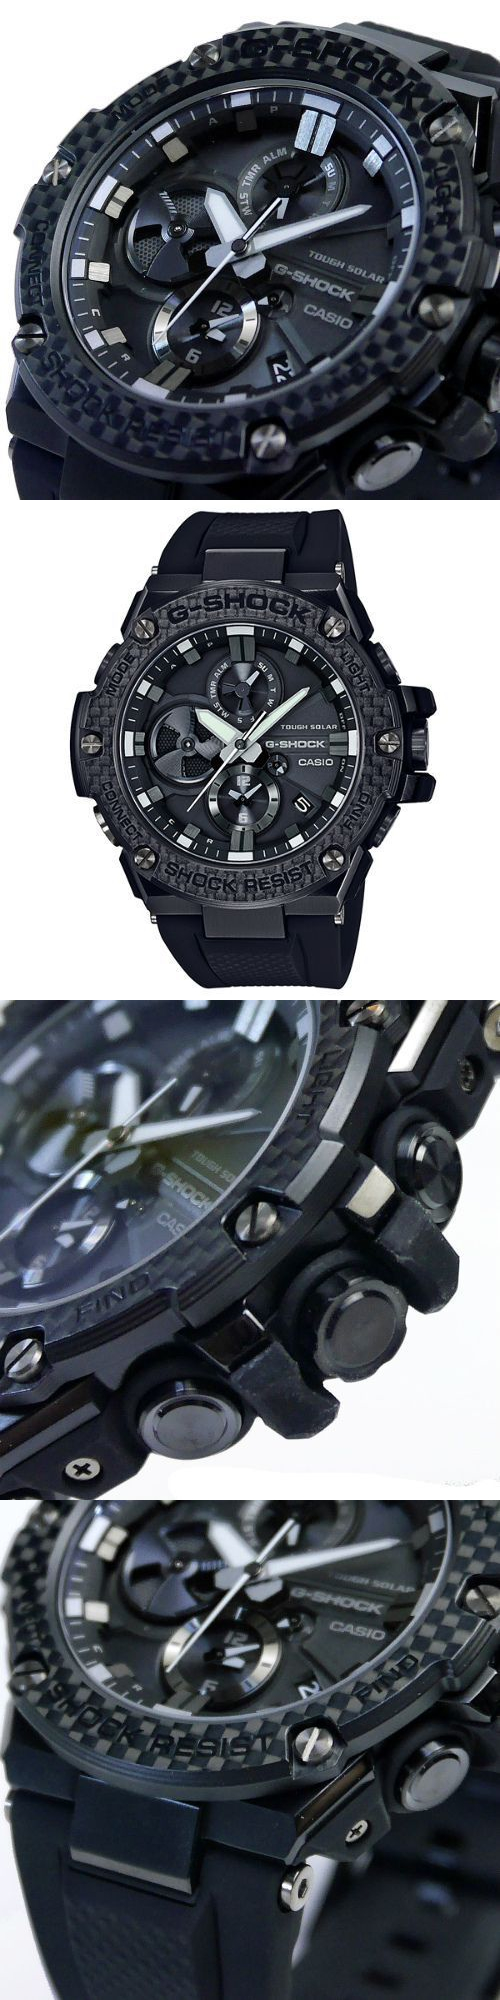 Other Jewelry And Watches 98863 Casio G Shock G Steel Carbon